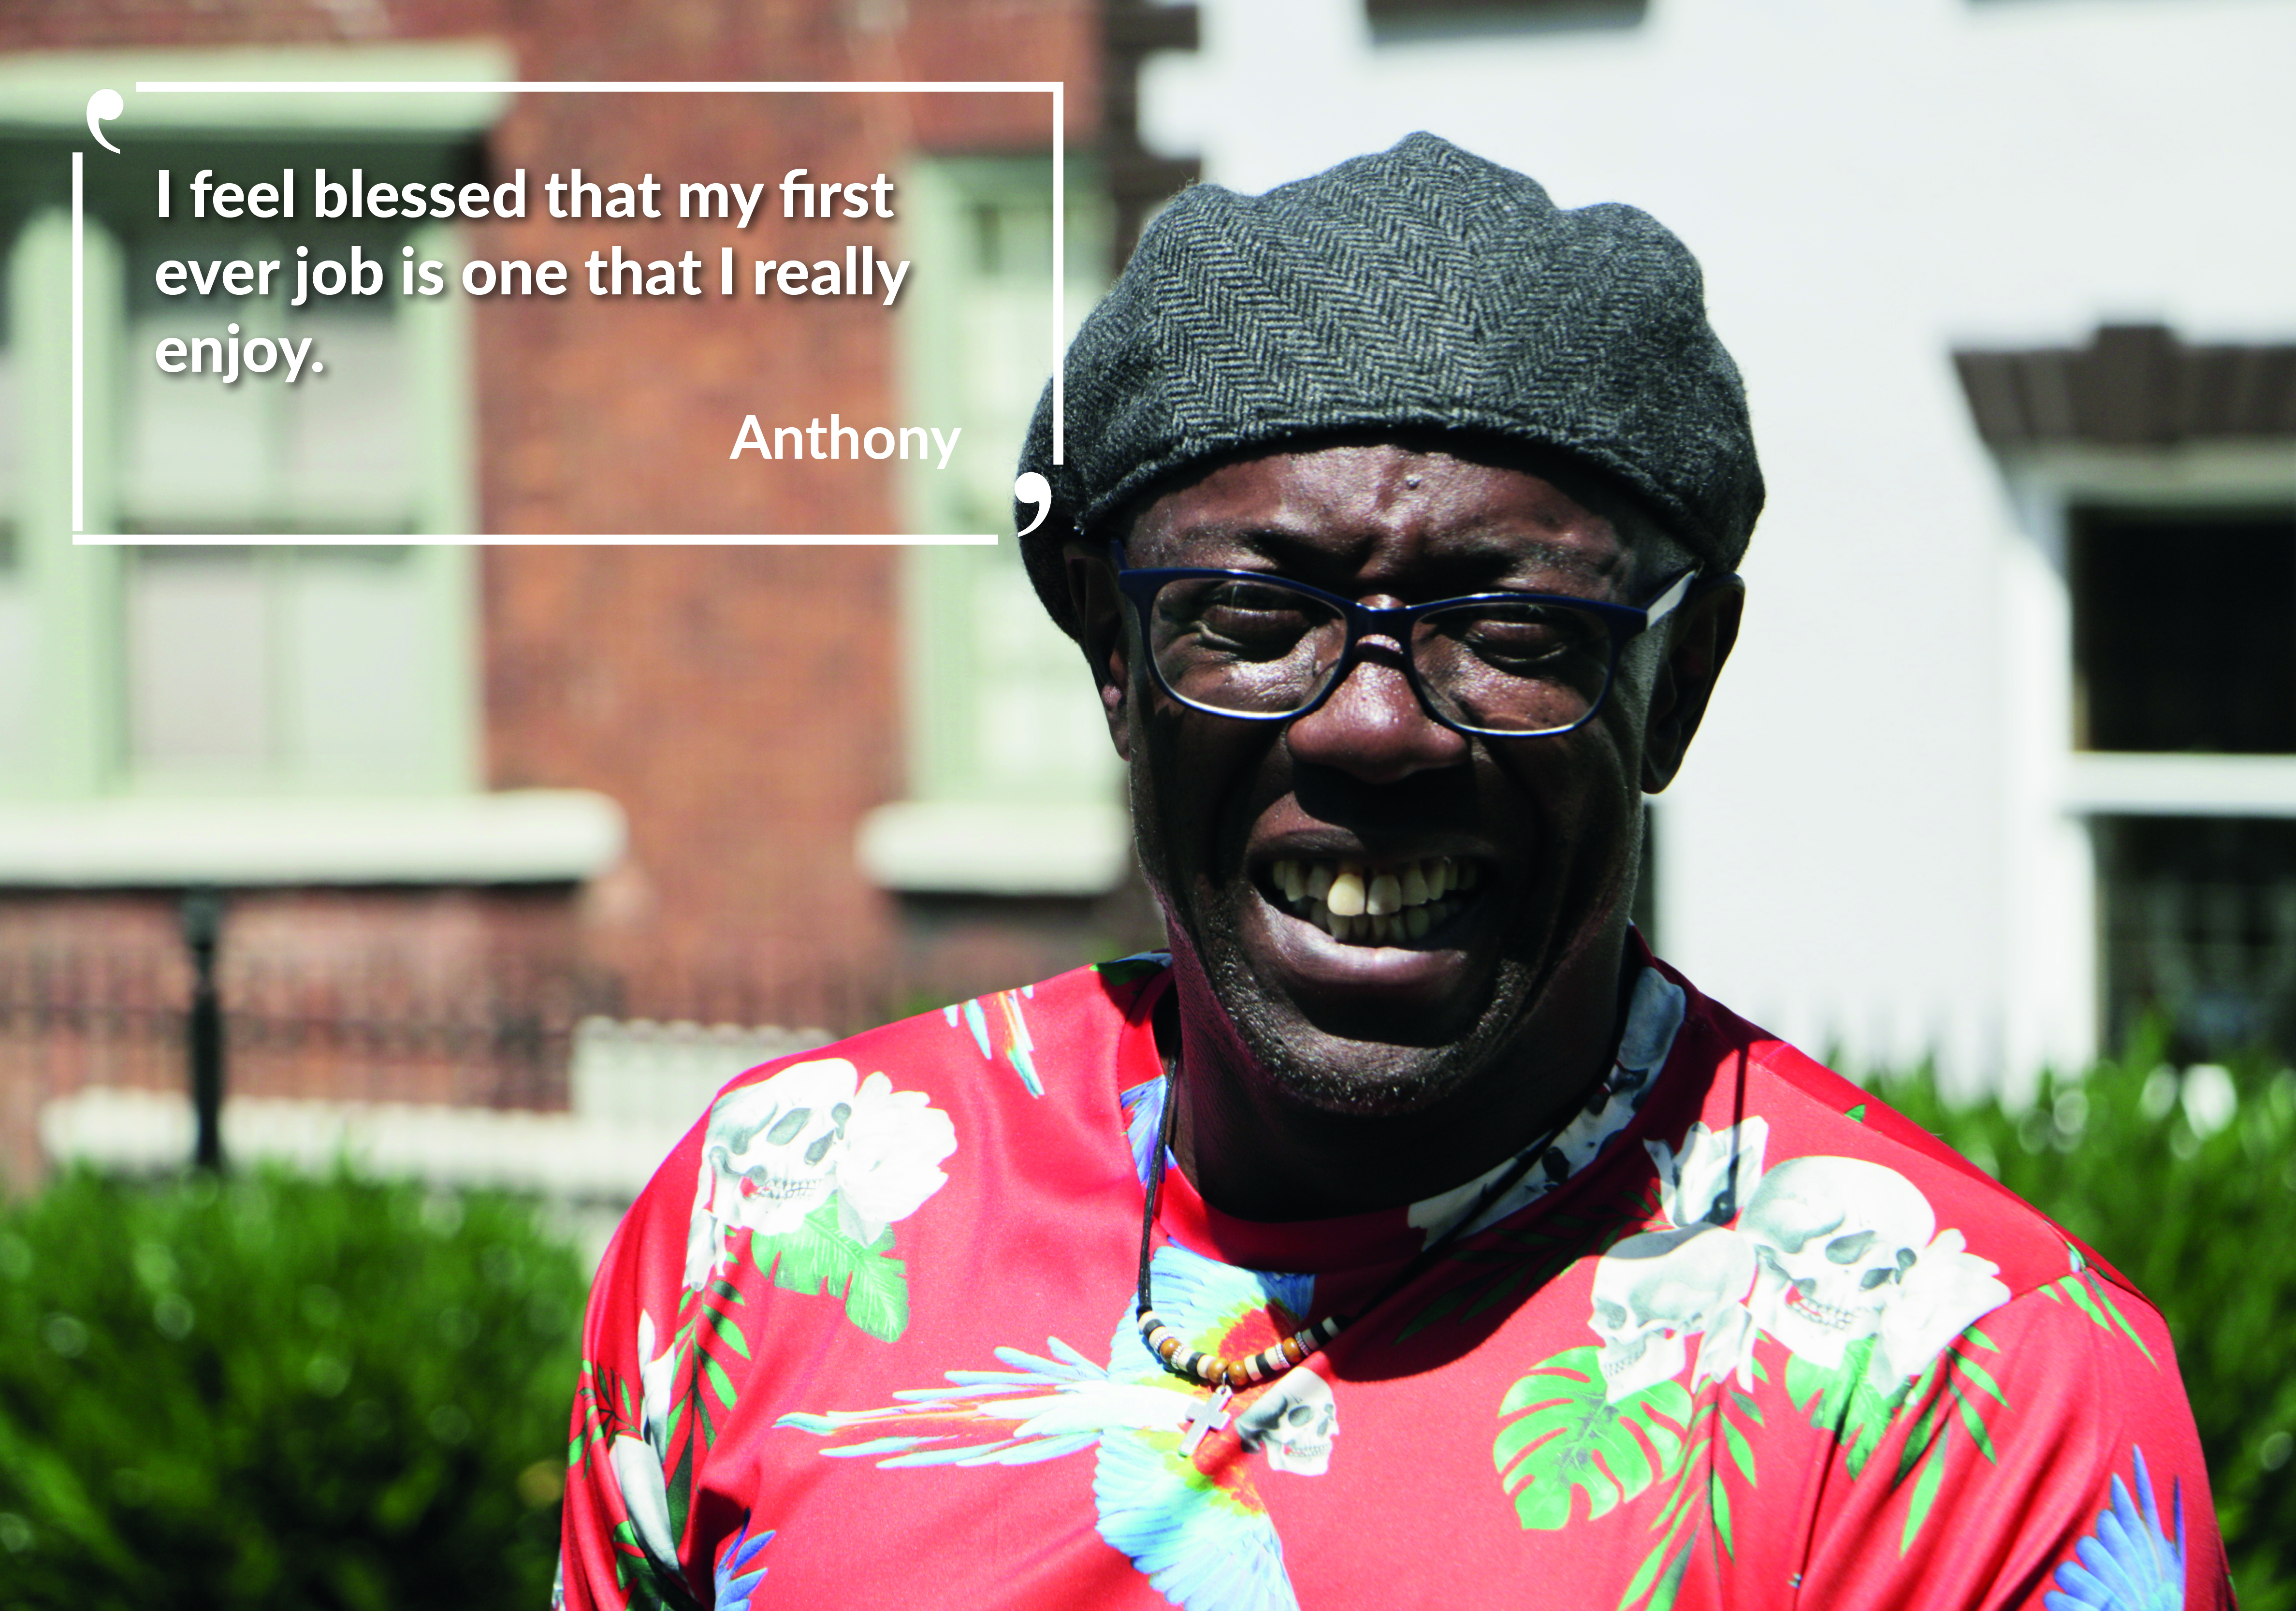 Anthony says I feel blessed that my first ever job is one that I really enjoy.